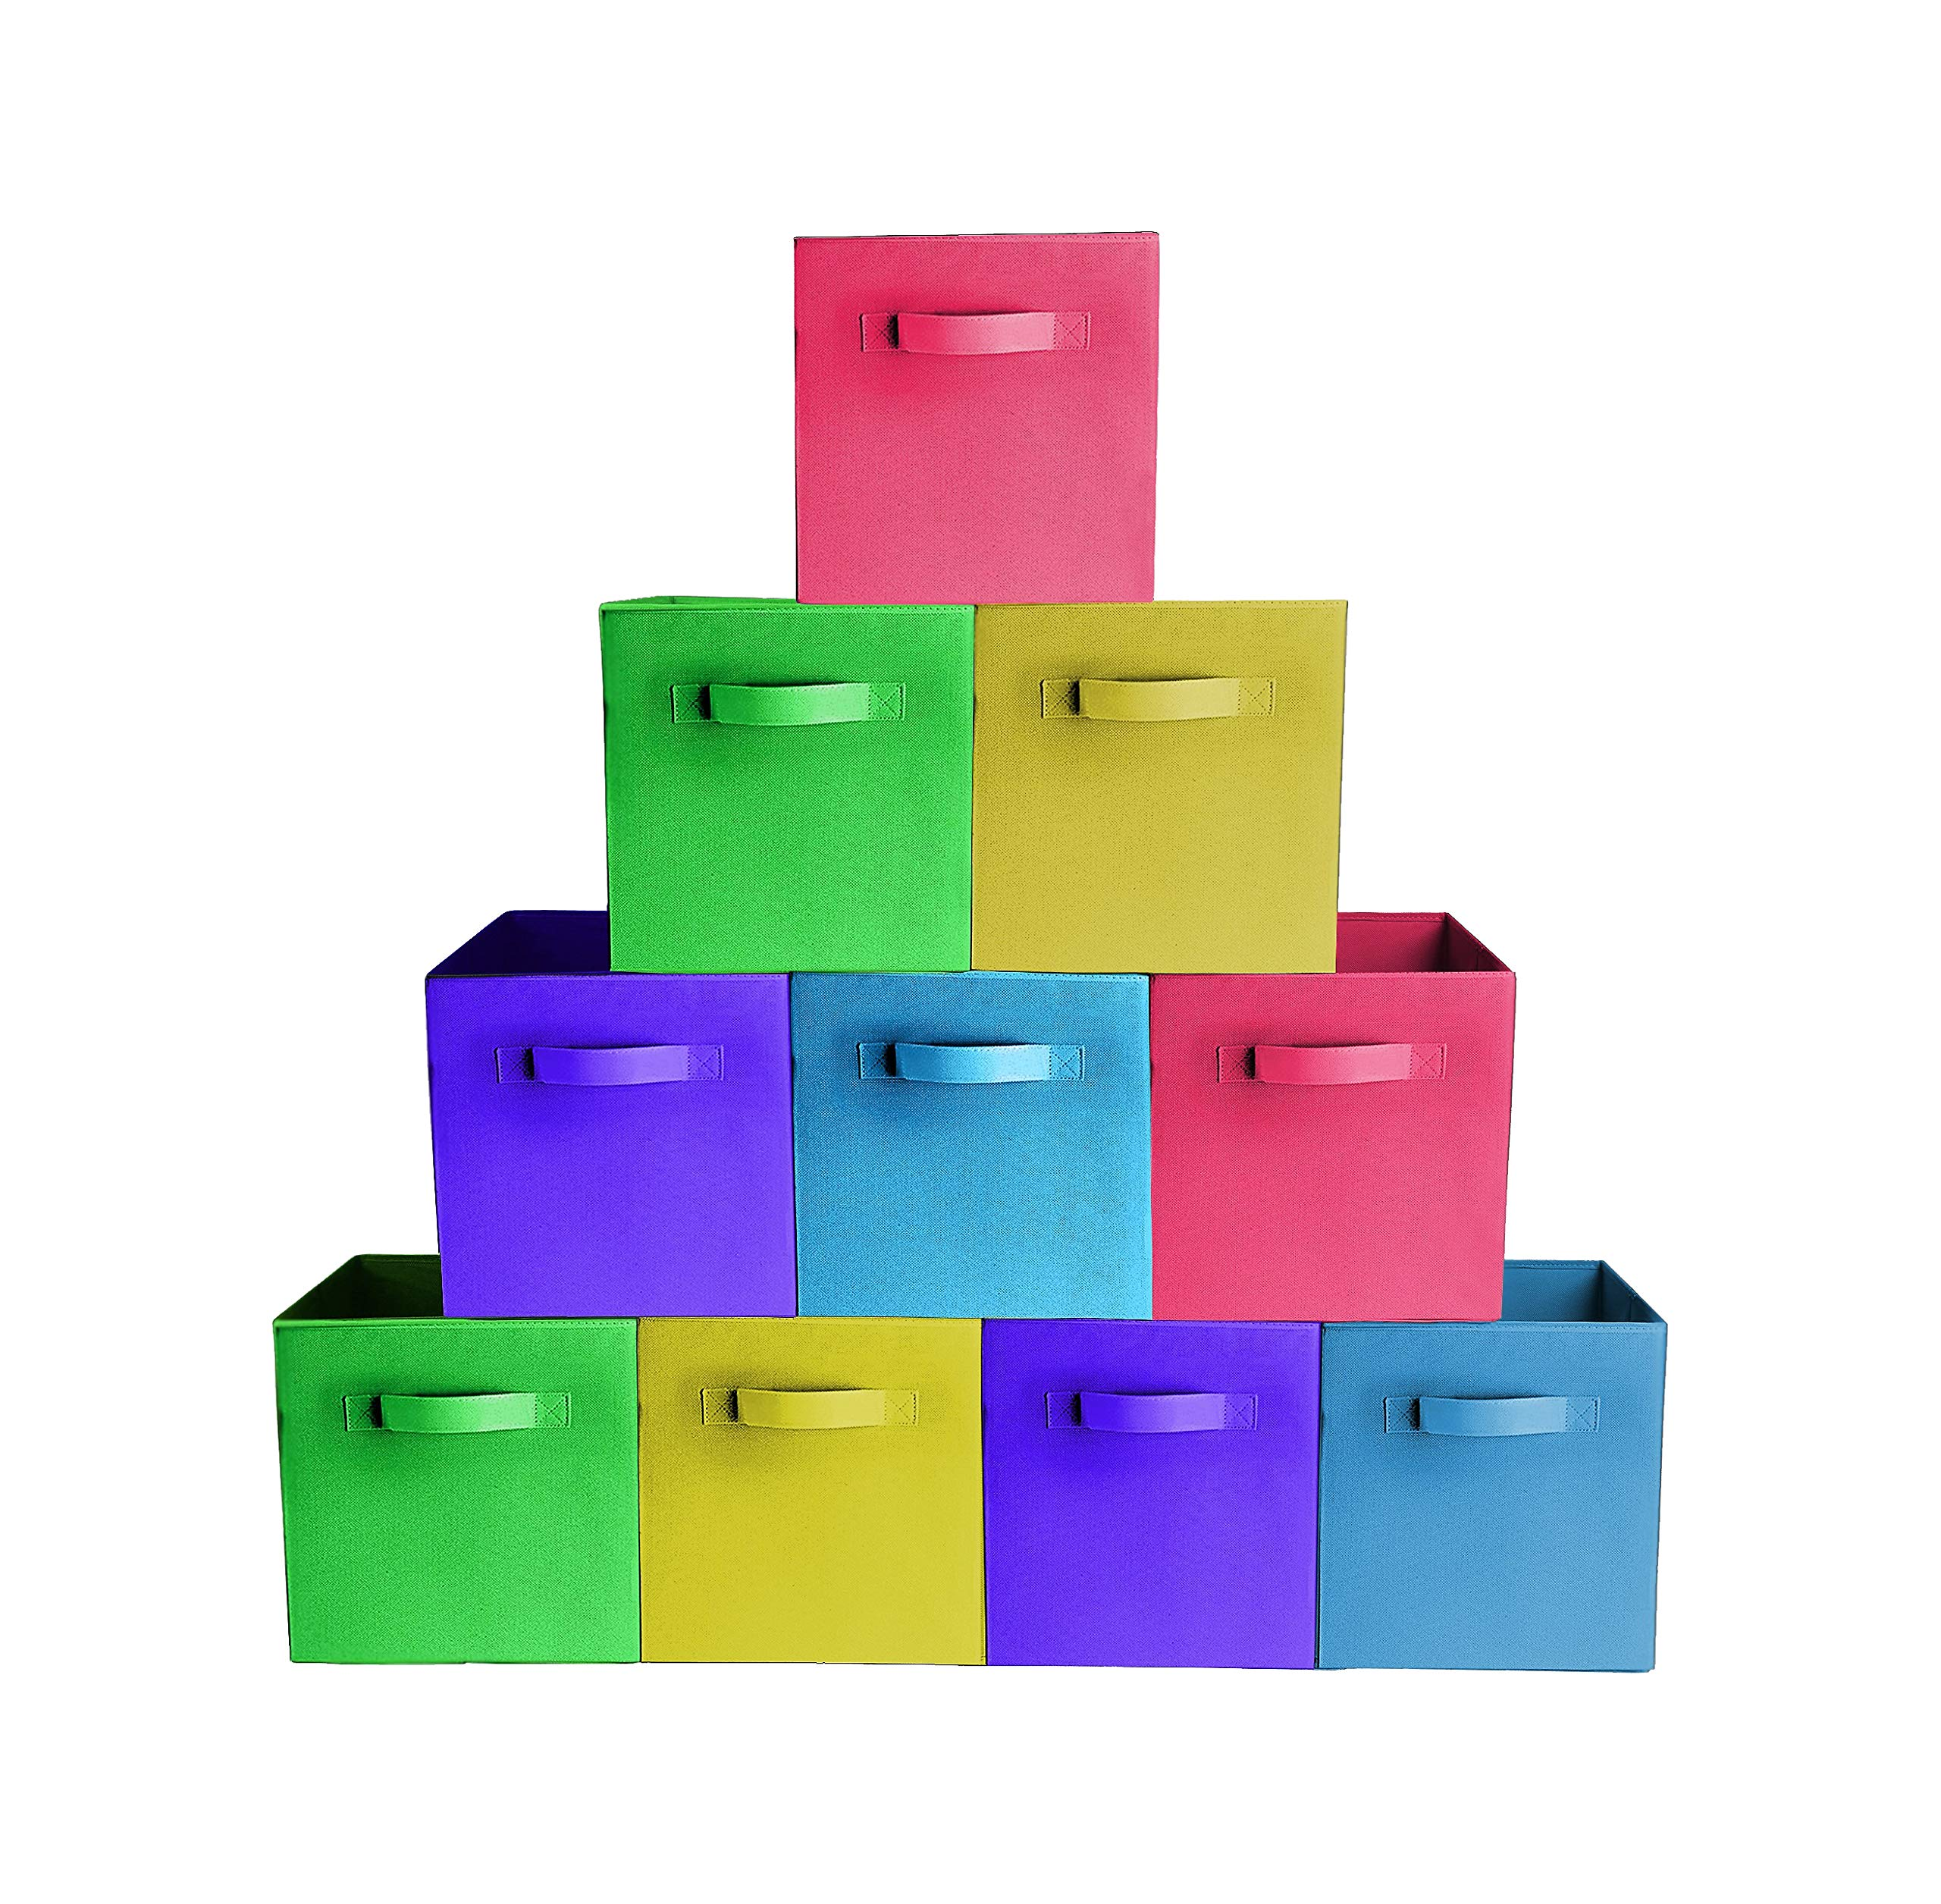 [10-Pack,Bright Mix Colors] Durable Storage Bins, Containers, Boxes, Tote, Baskets| Collapsible Storage CubesHousehold Organization | Fabric & Cardboard| Dual Handle | Foldable Shelves Storages by Prorighty